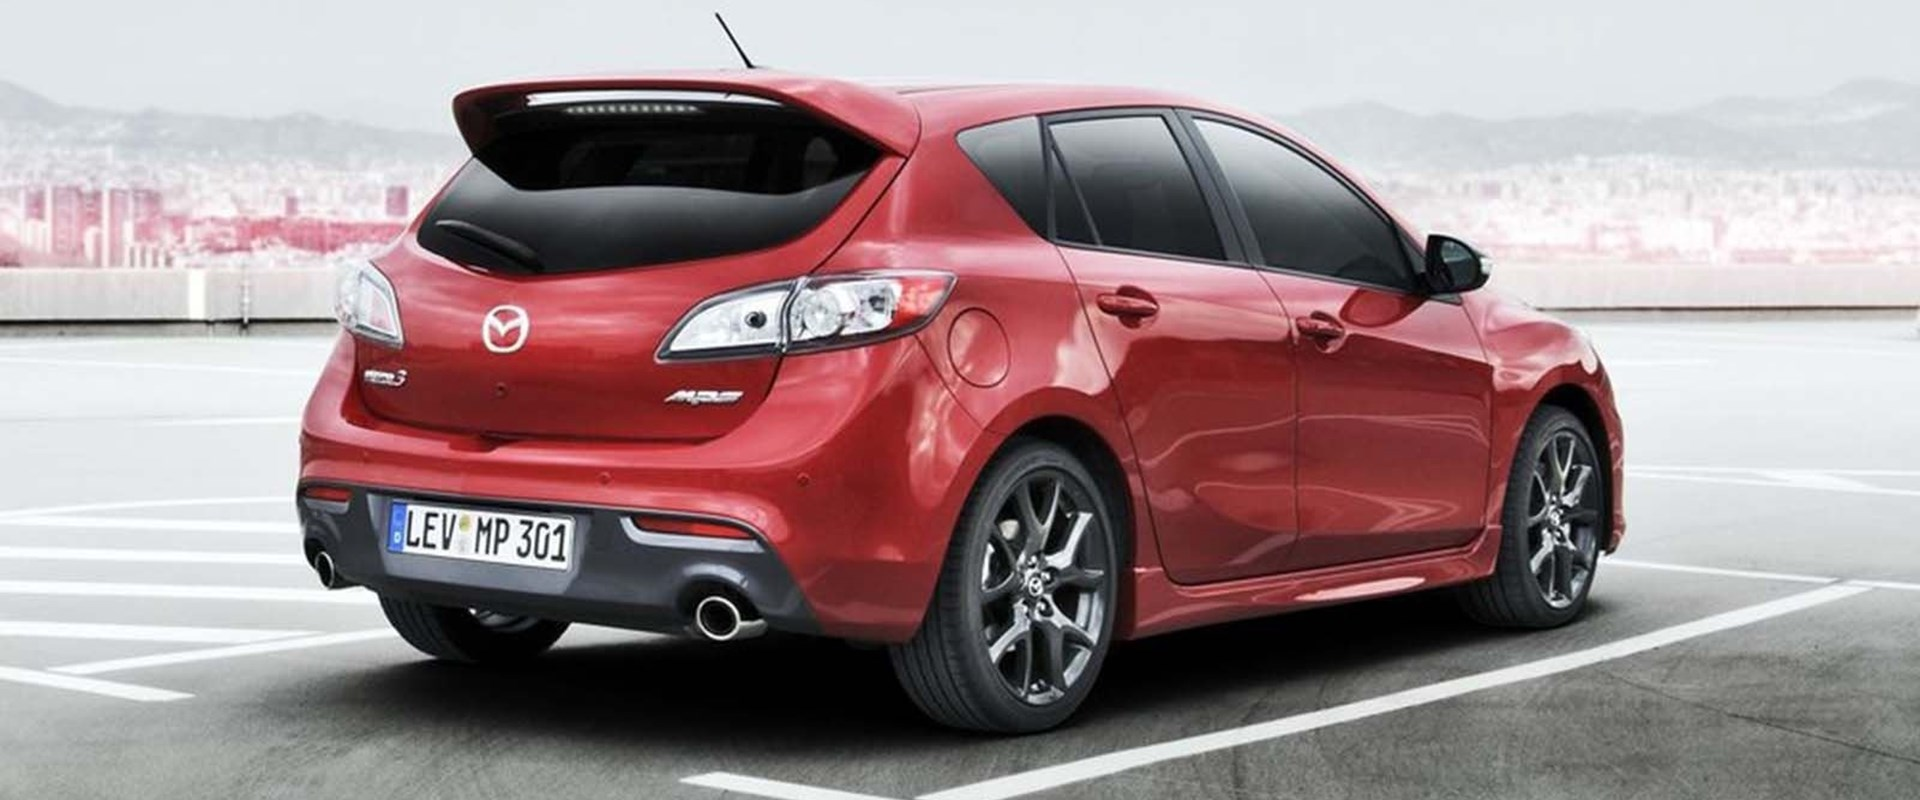 remember mazdaspeed models they are now incredibly cheap carbuzz rh carbuzz com 2013 Mazda 3 2009 Mazda 3 Interior